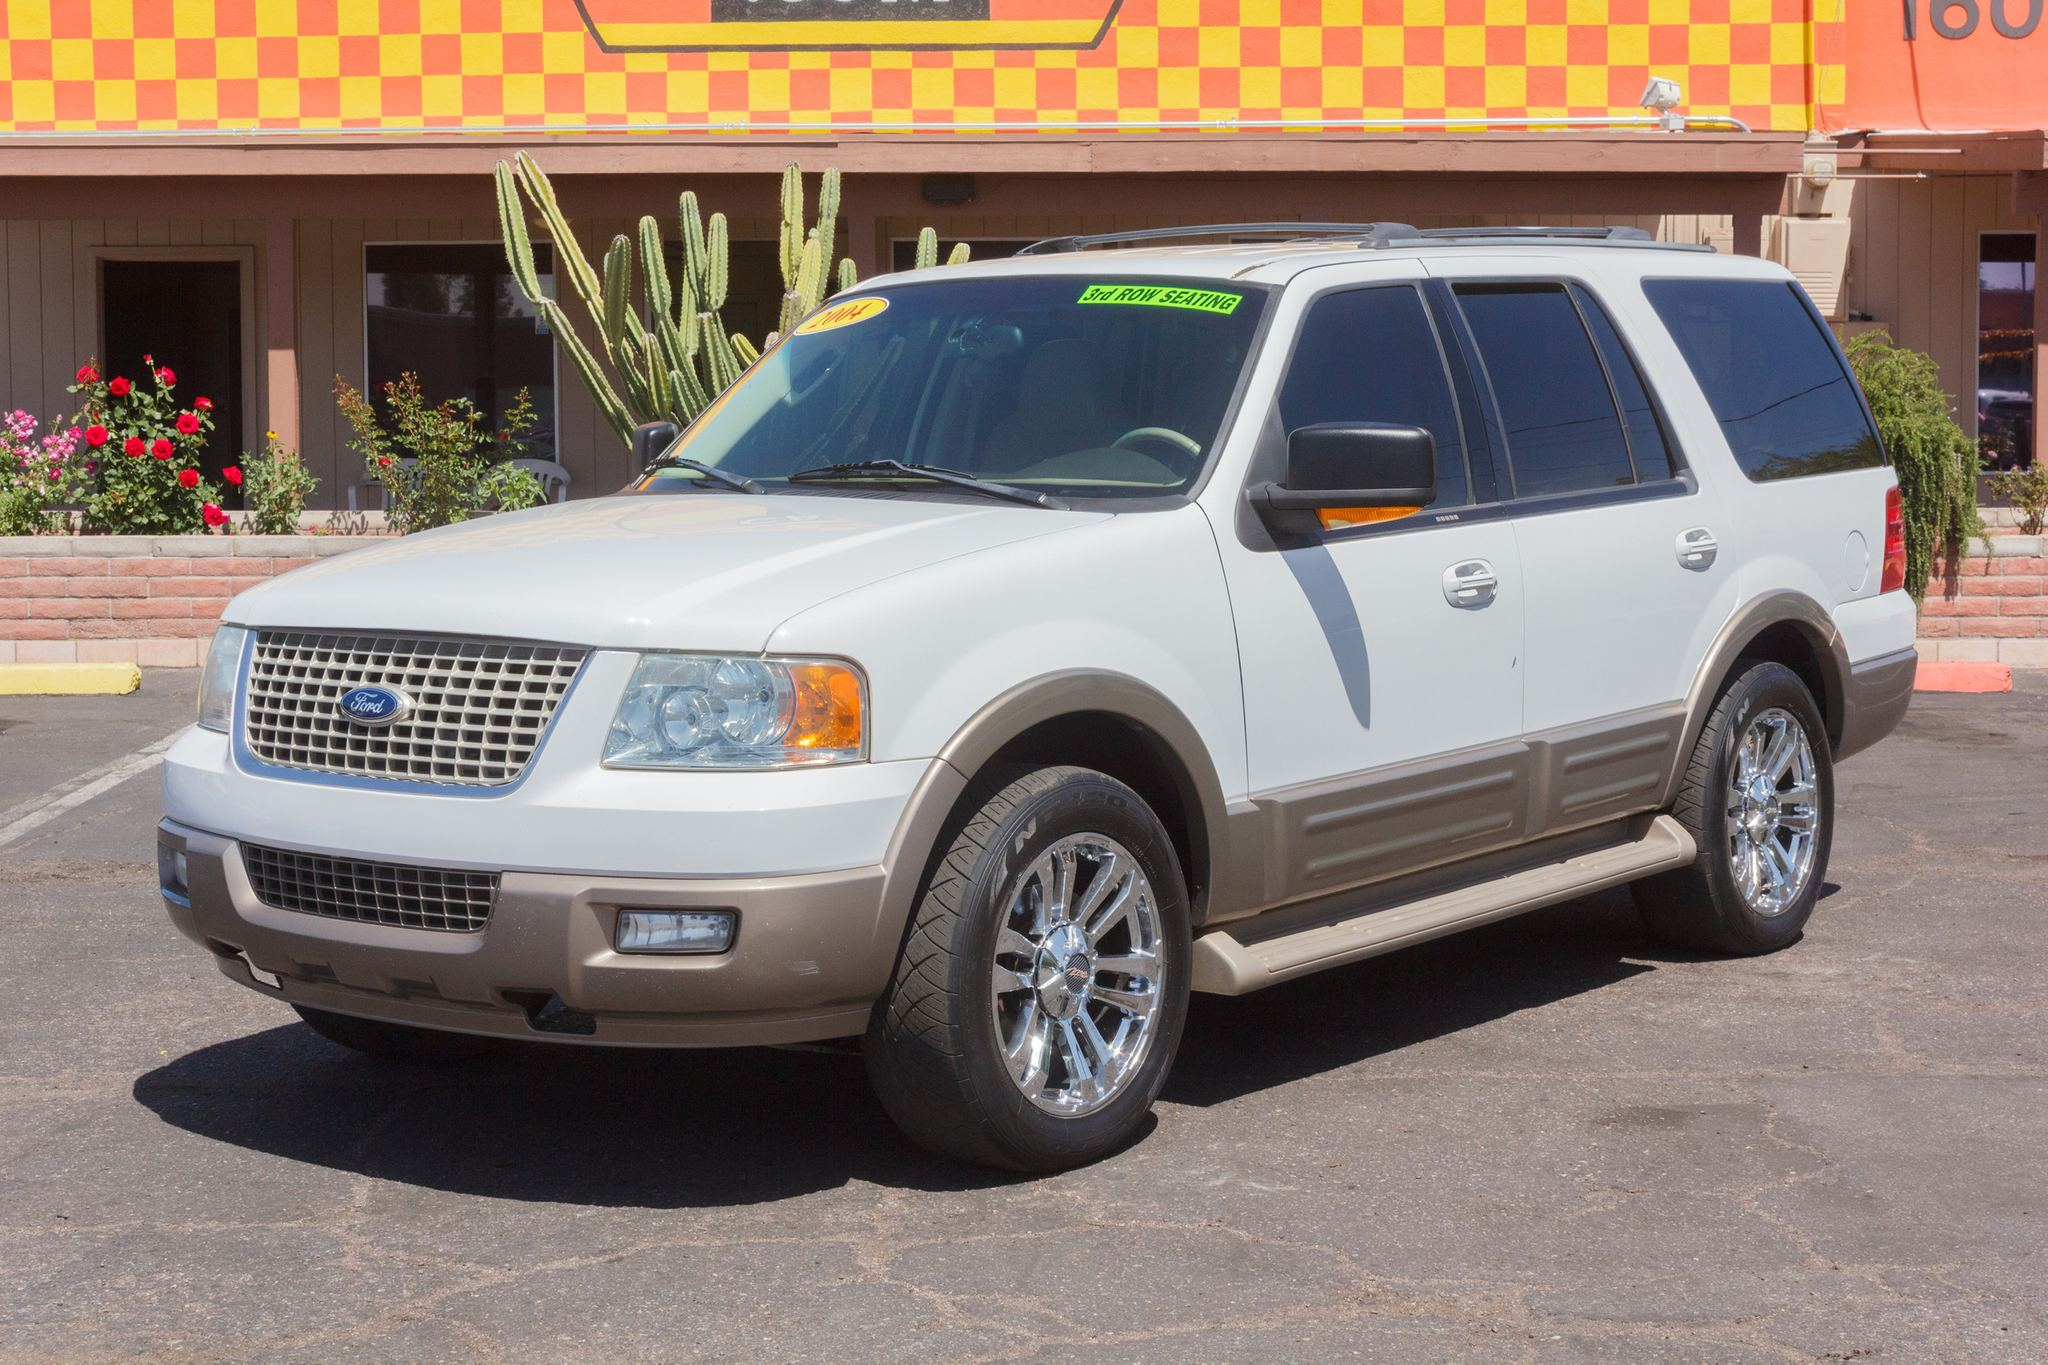 Photo of 2004 Ford Expedition 2WD 4d Wagon Eddie Bauer White